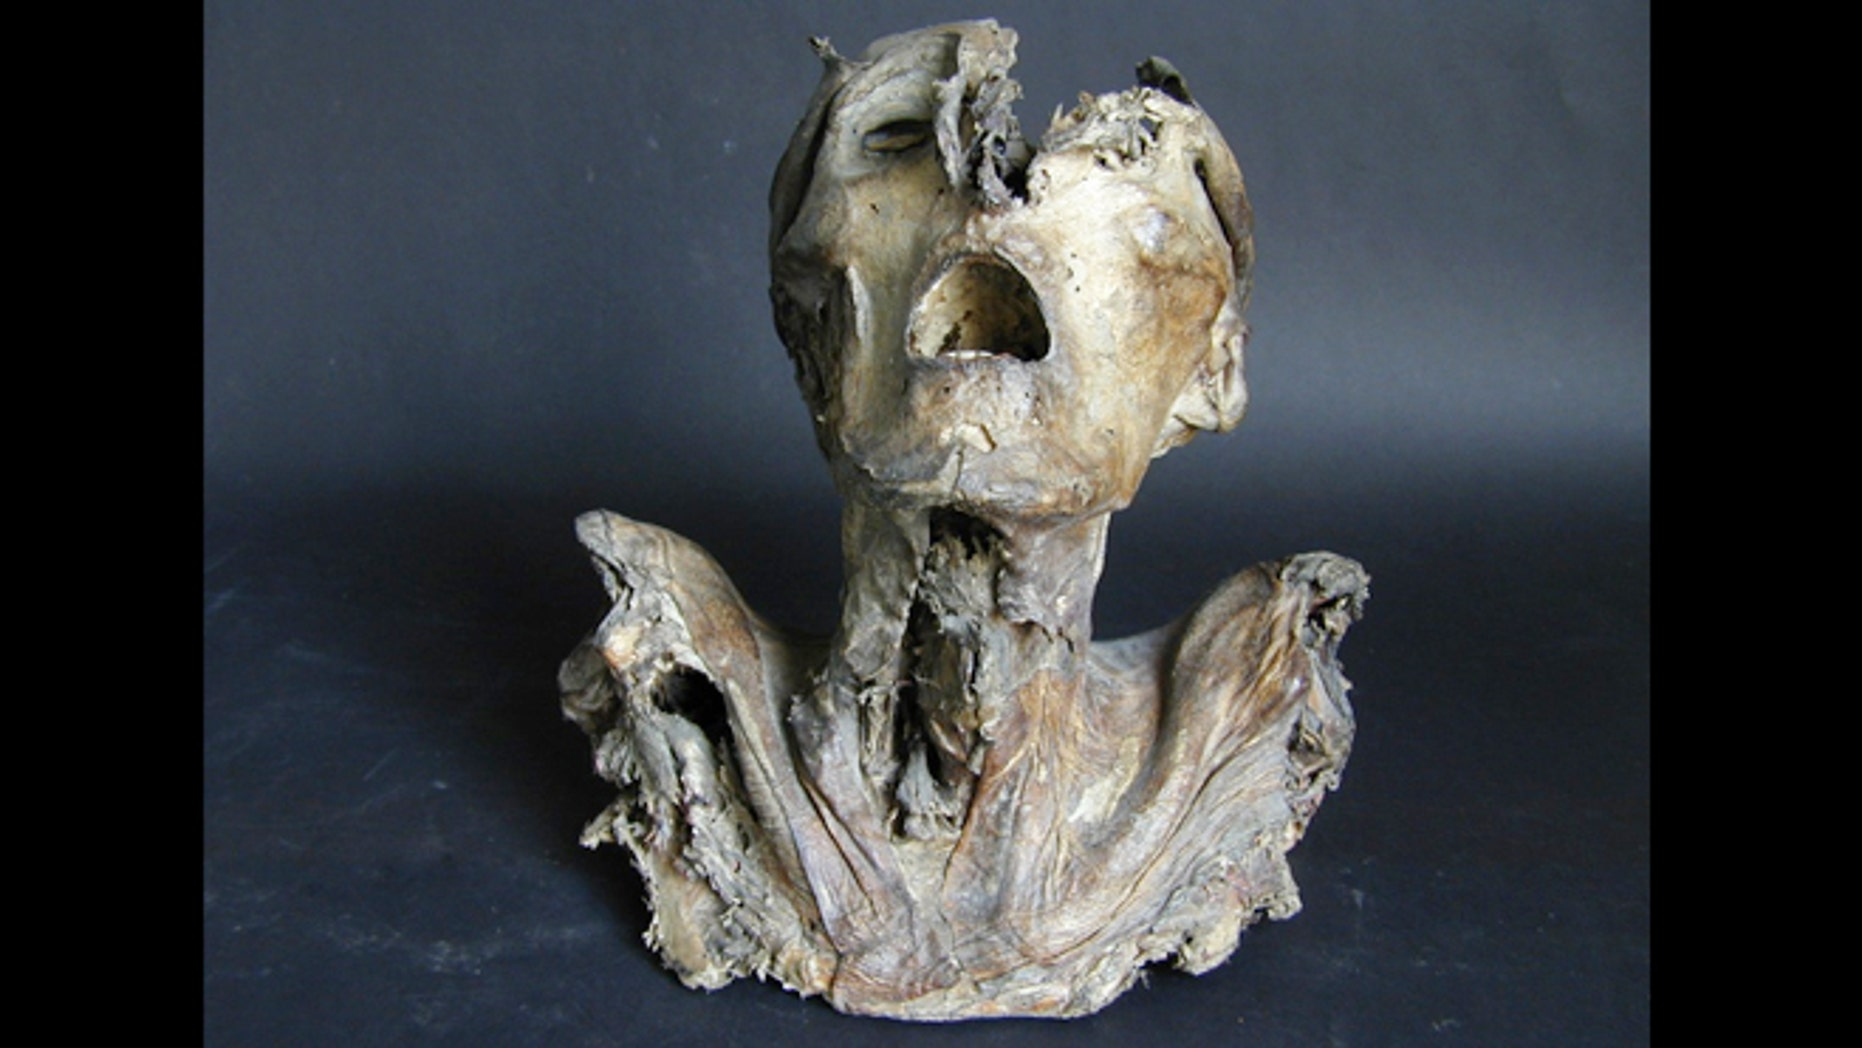 This anatomical specimen dating to the 1200s is the oldest known in Europe.